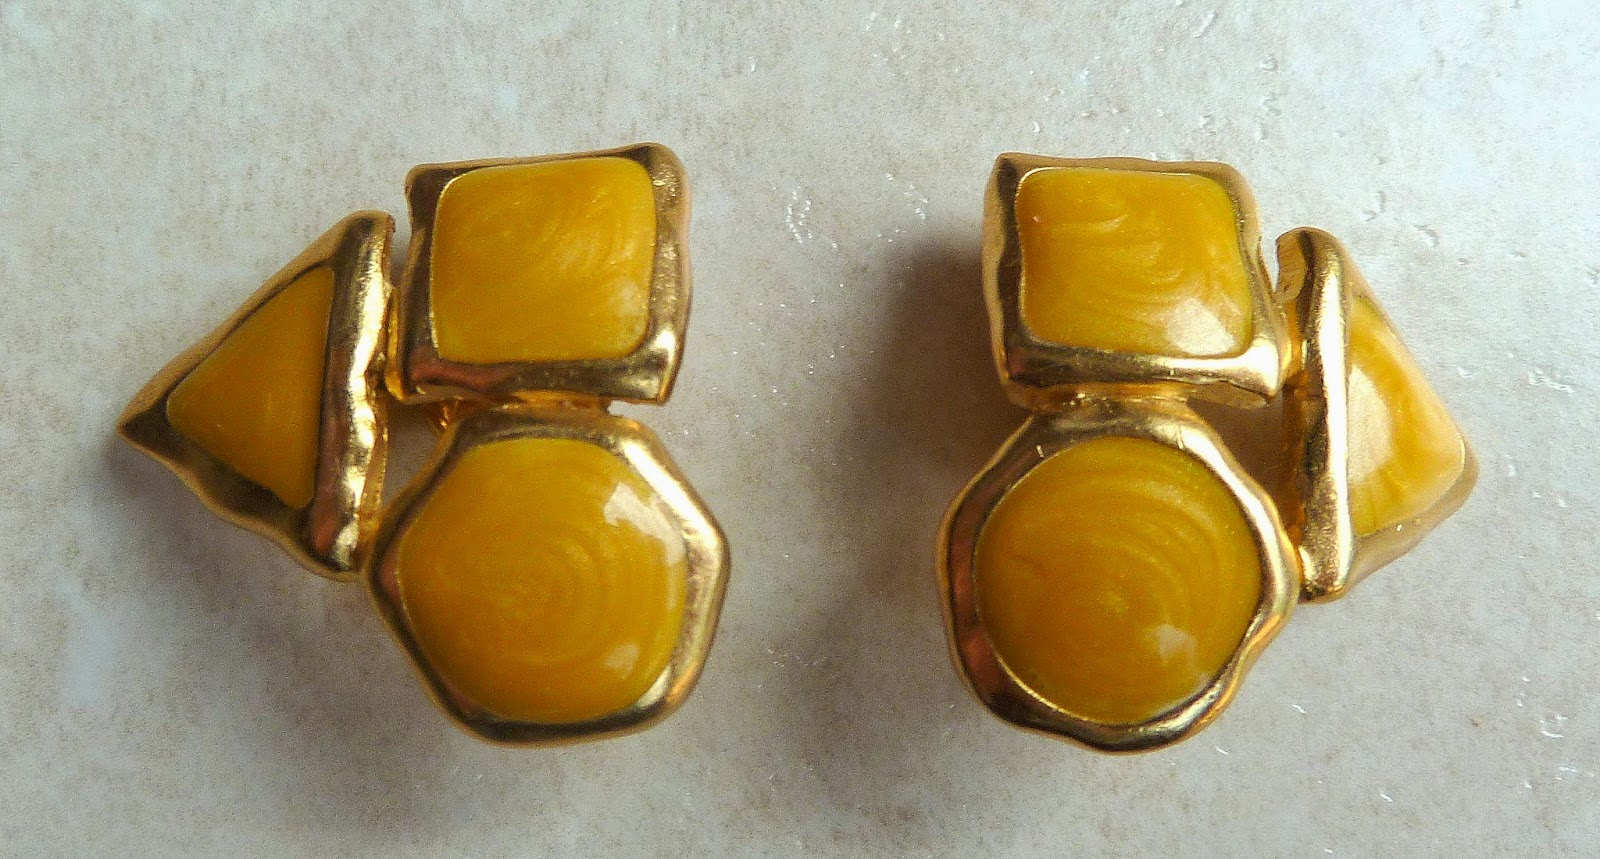 http://www.kcavintagegems.uk/vintage-1980s-trifari-yellow-and-gold-clip-on-earrings-142-p.asp